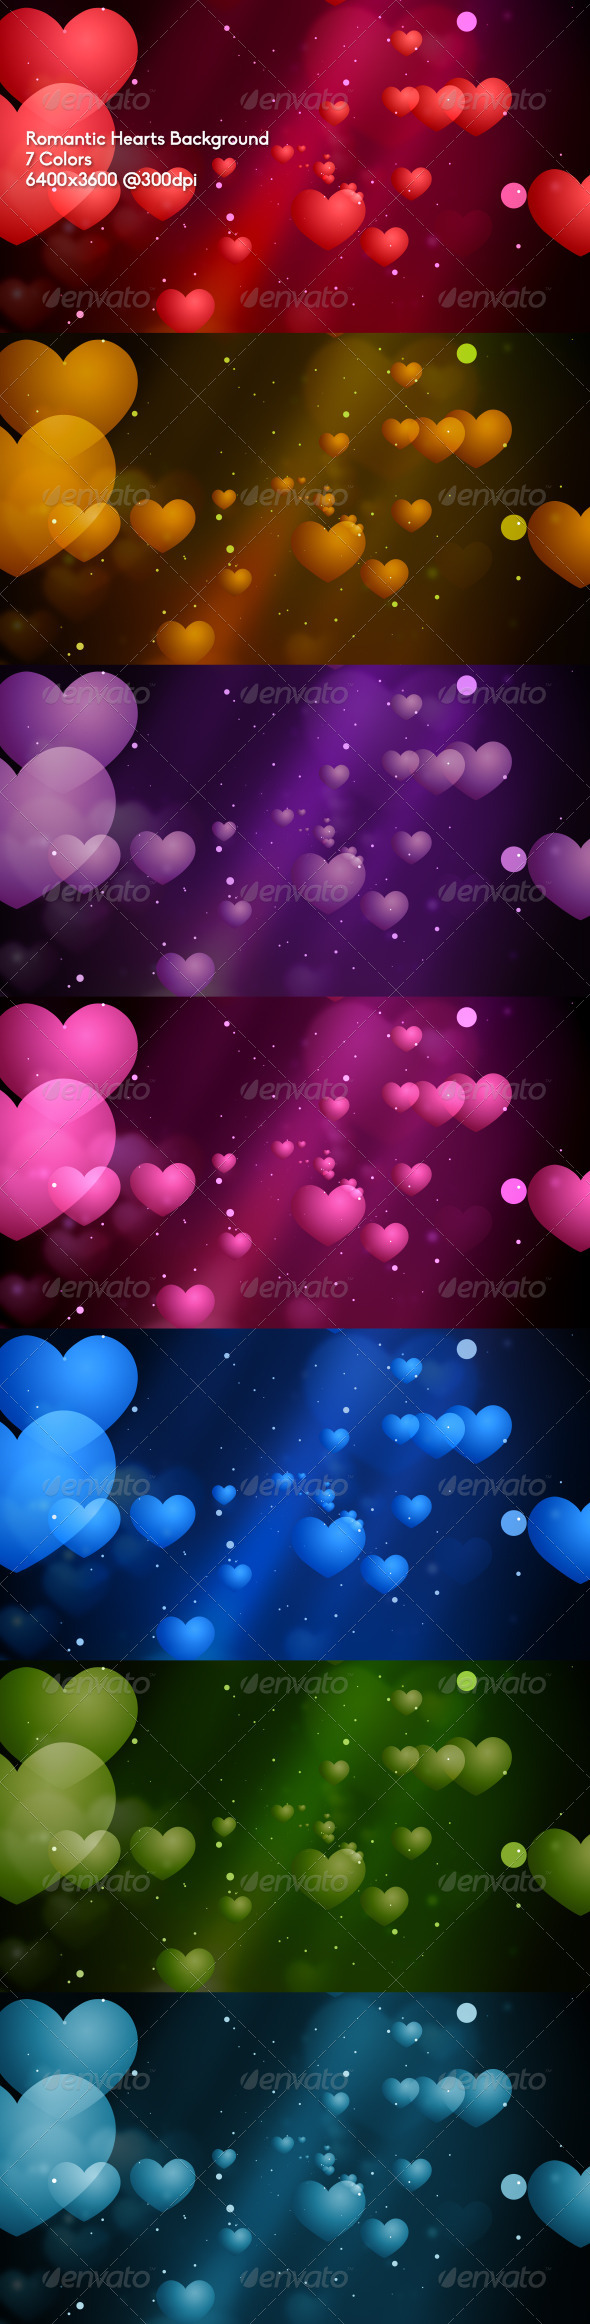 Romantic Hearts Background - Abstract Backgrounds